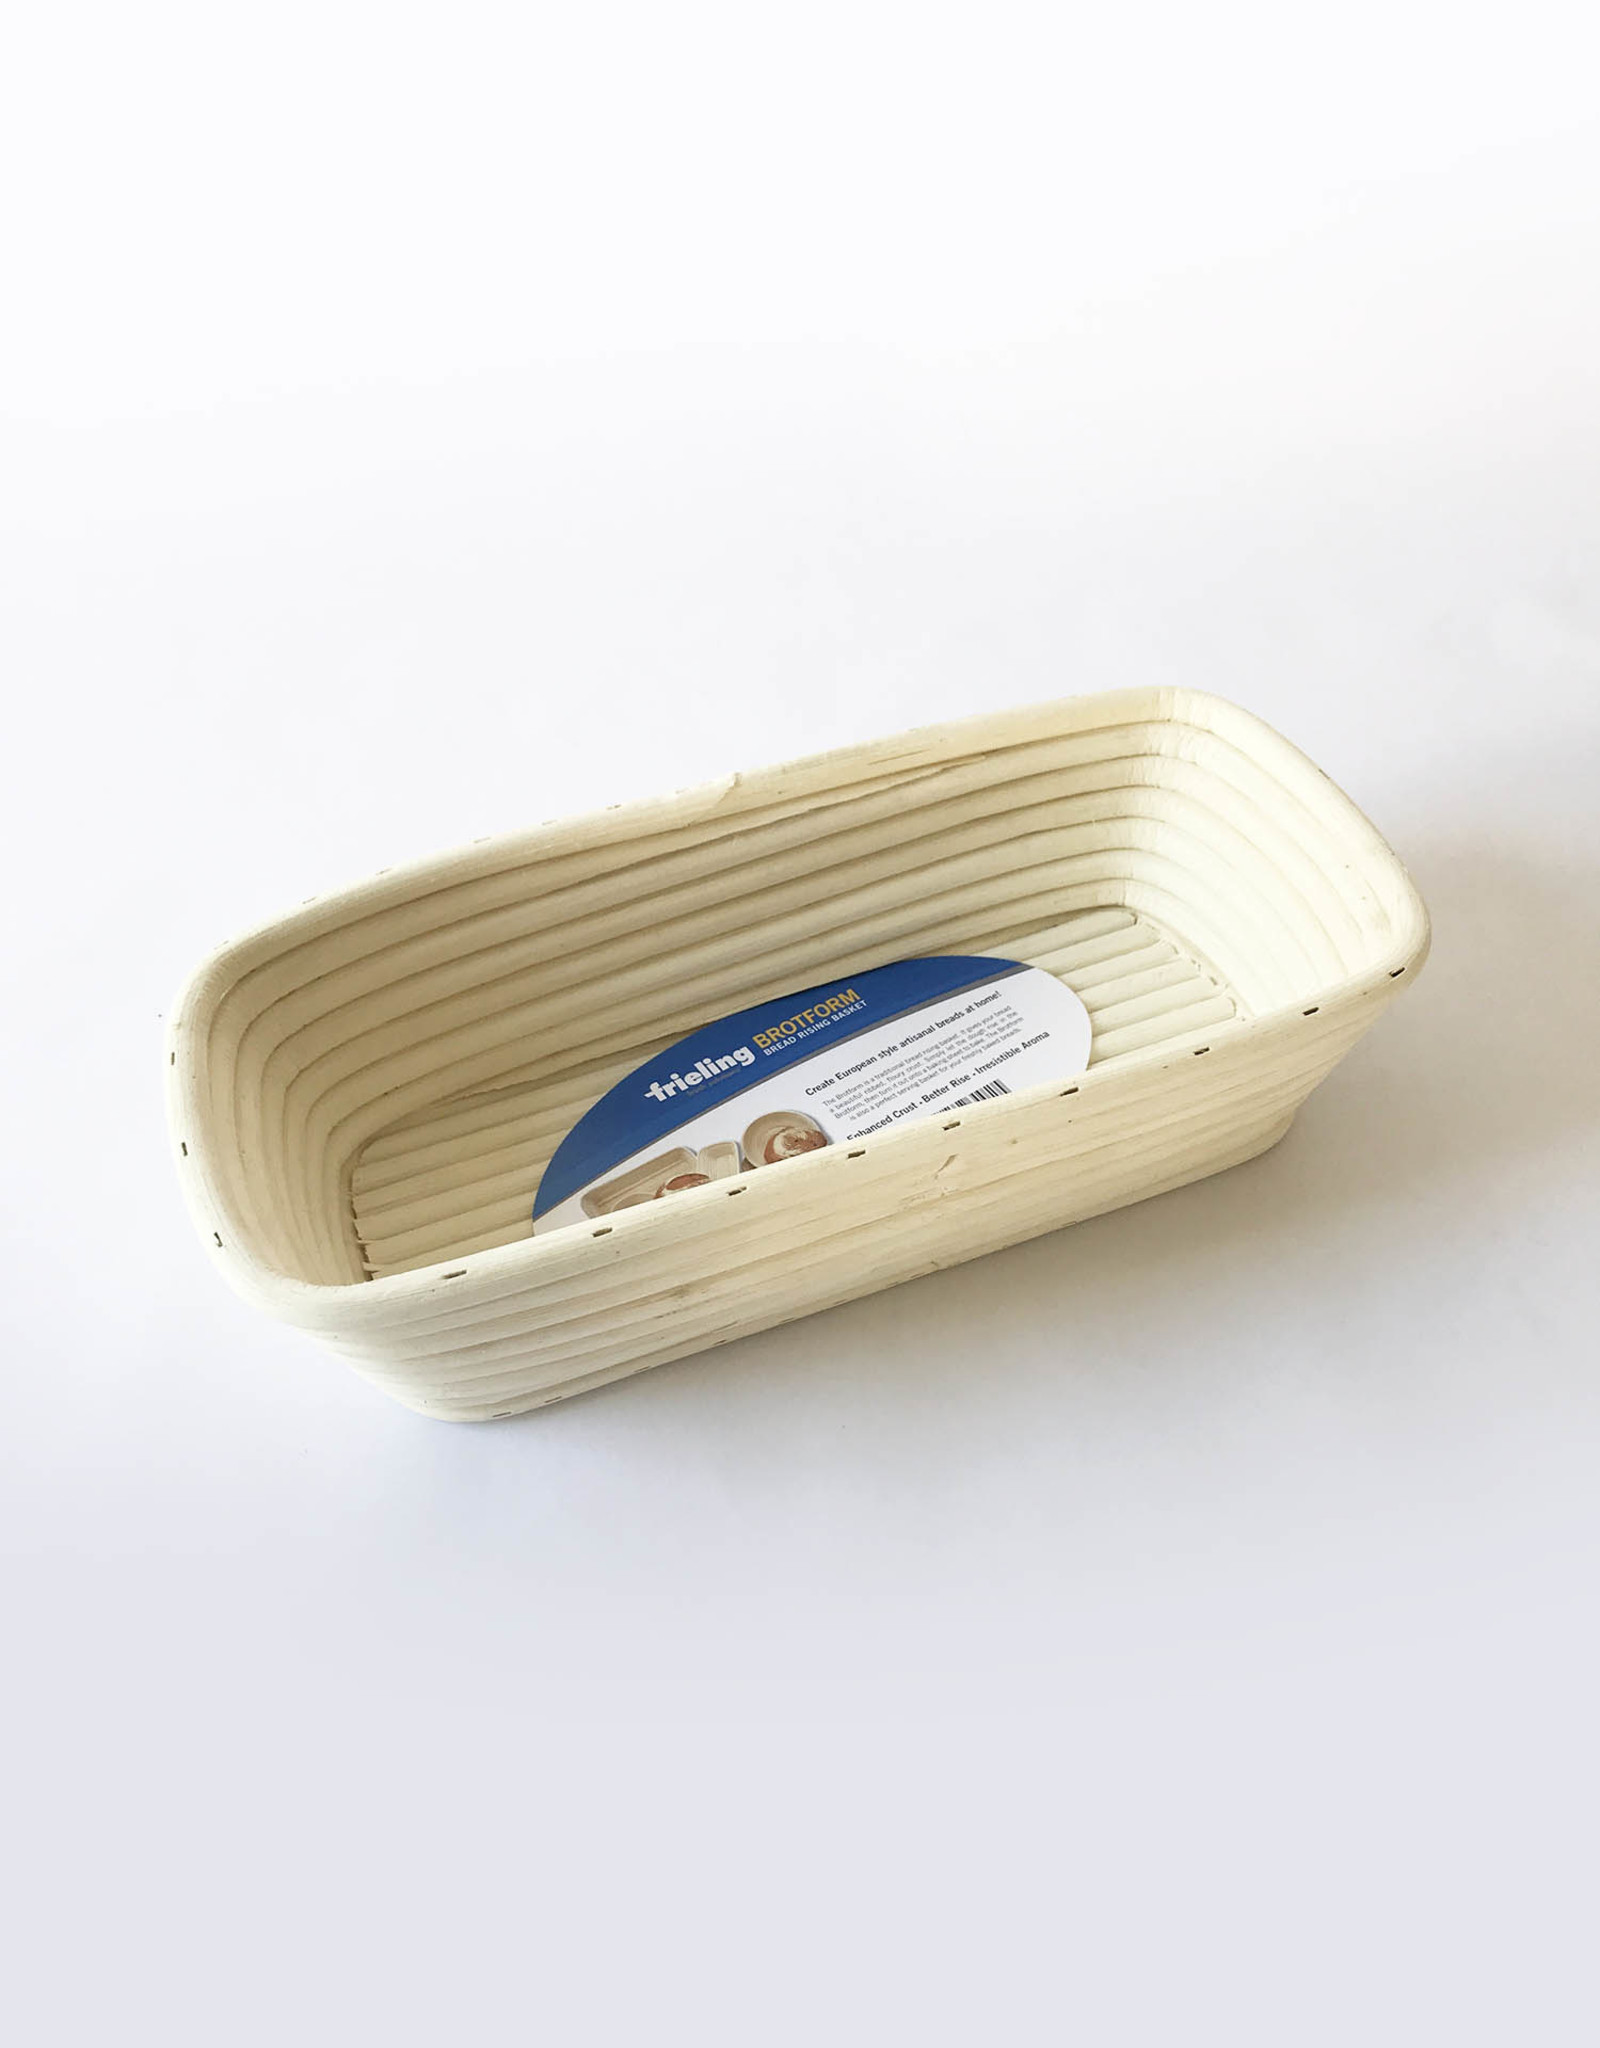 Frieling Frieling Brotform rectangular proofing basket 12 x 5 1/2""